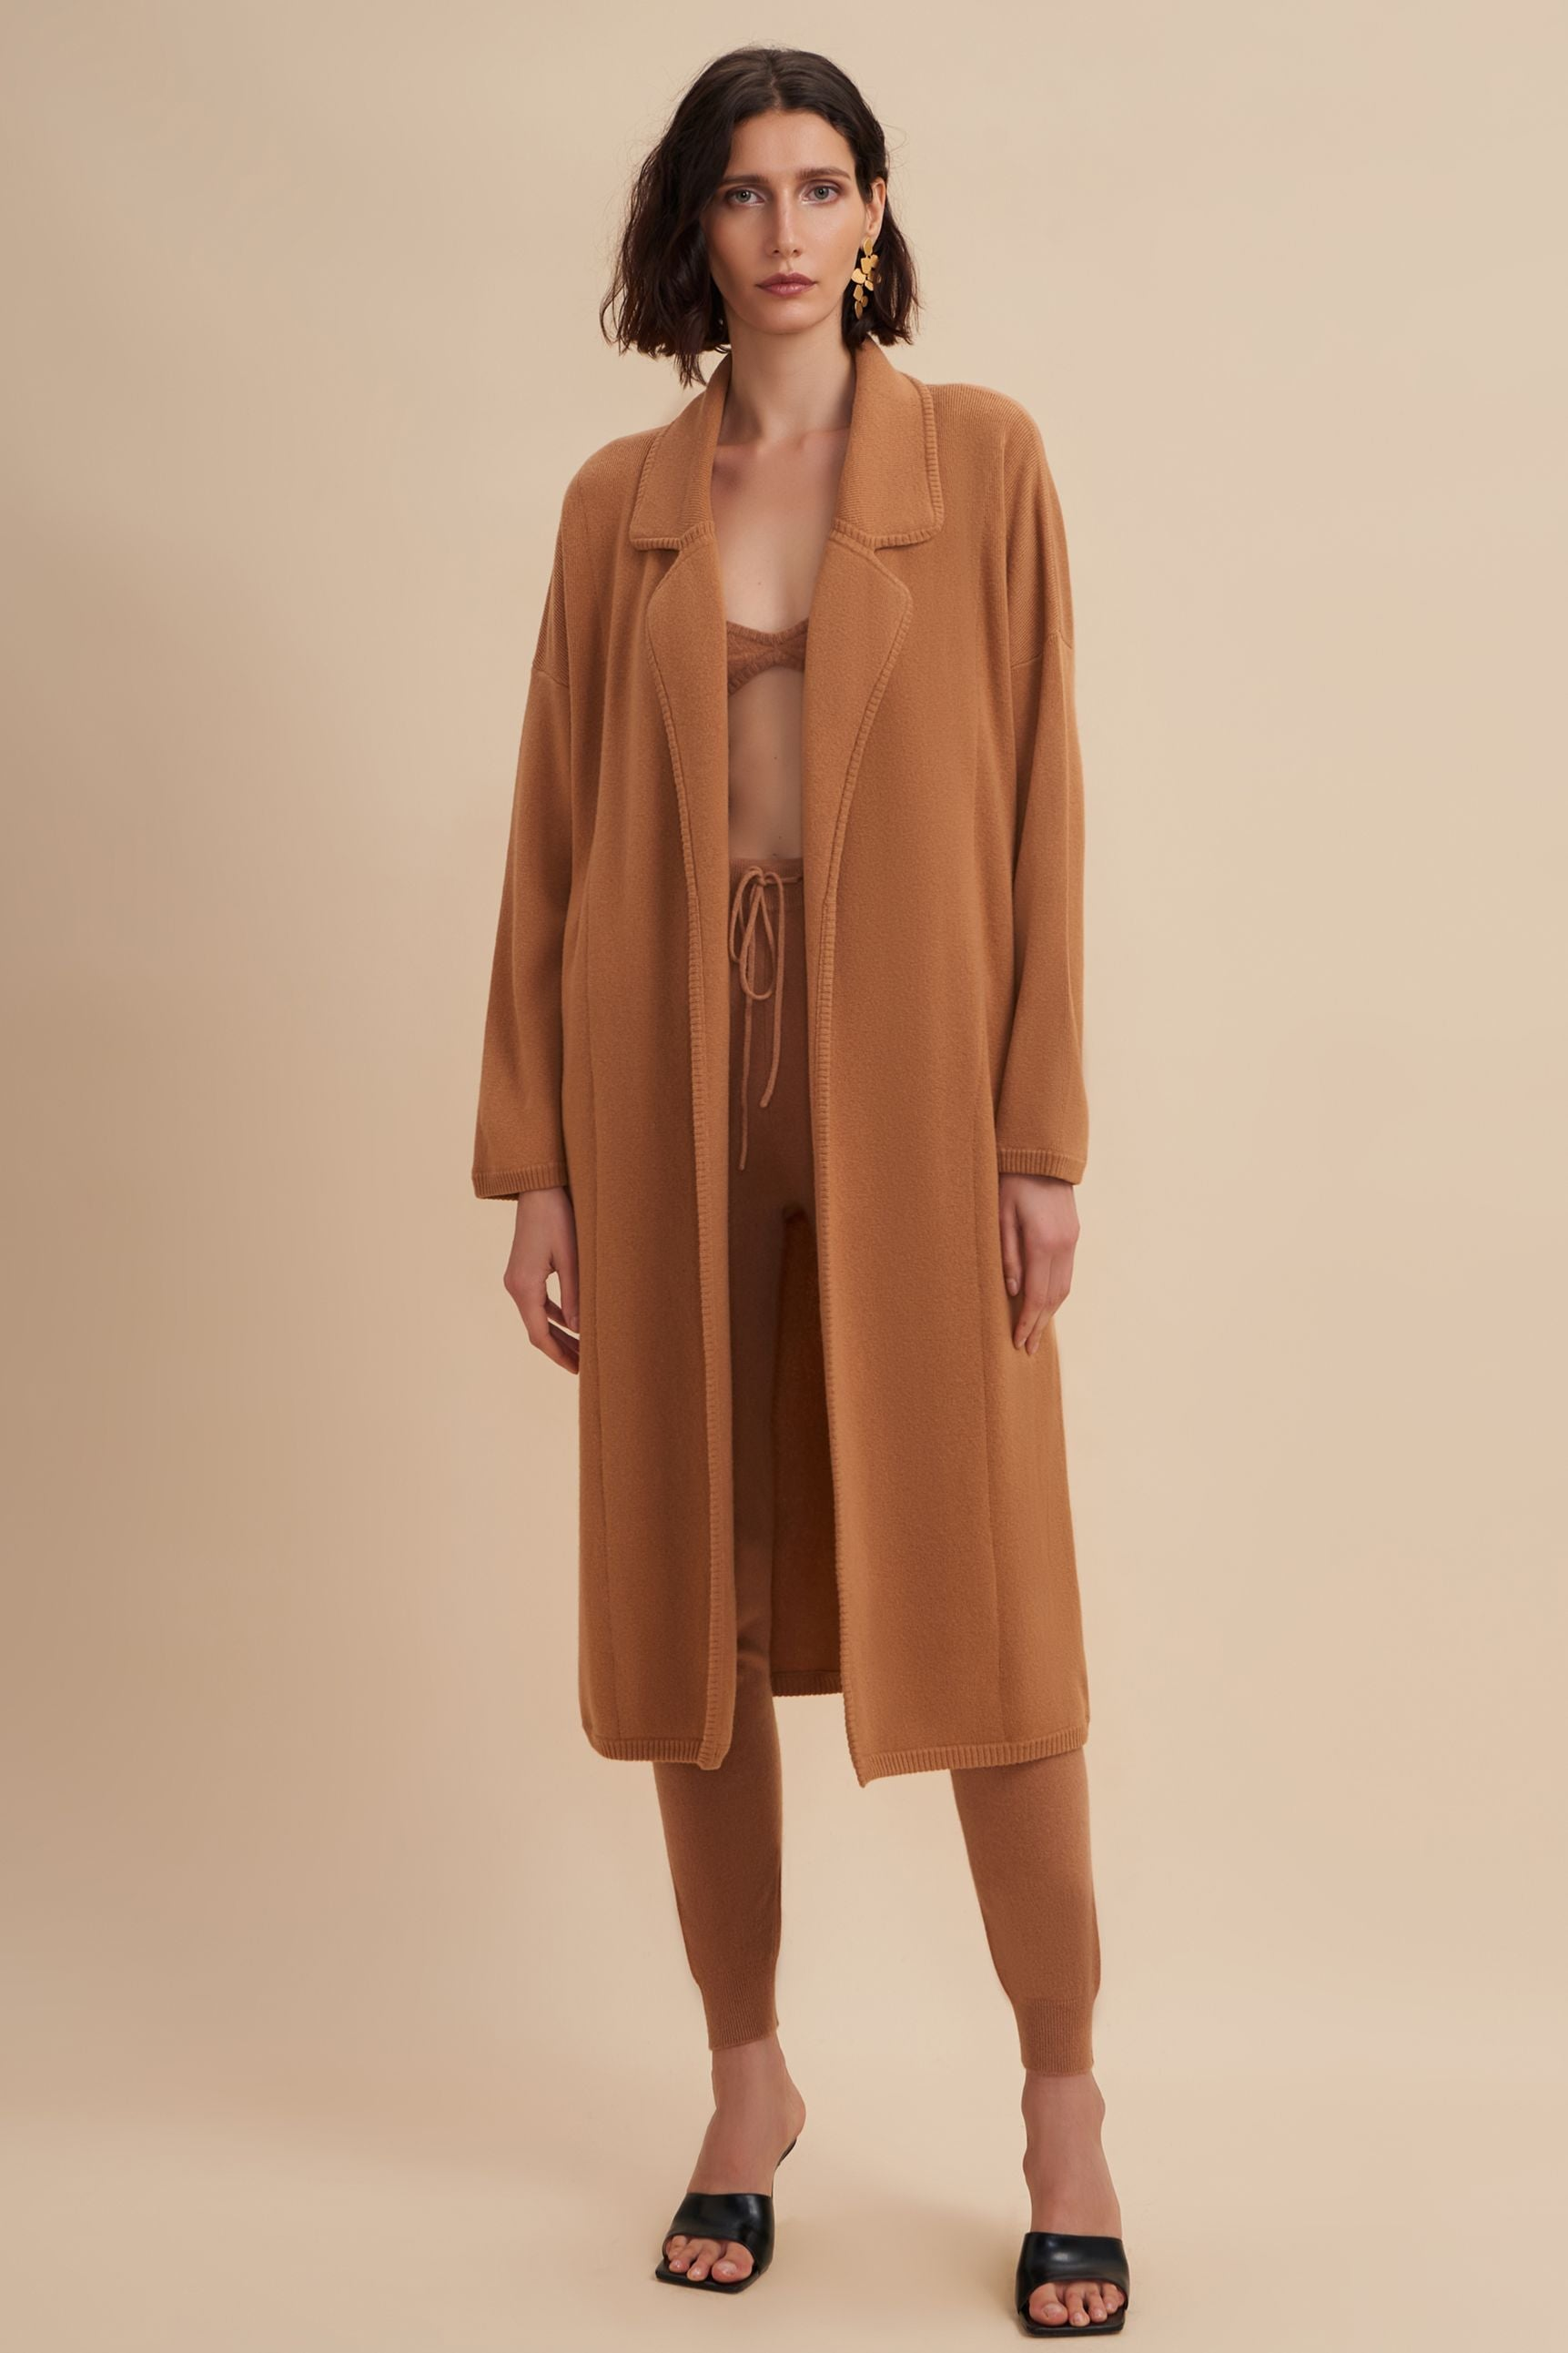 long camel coat,long camel coat women,camel sweater cardigan,cashmere coat,cashmere coat women,cashmere coat for women,long cashmere coat,cashmere cardigan,cashmere cardigan womens,cashmere cardigan long,cashmere cardigan sweater, cashmere cardigan sweater womens,camel sweater cardigan, long camel coat, long camel coat women